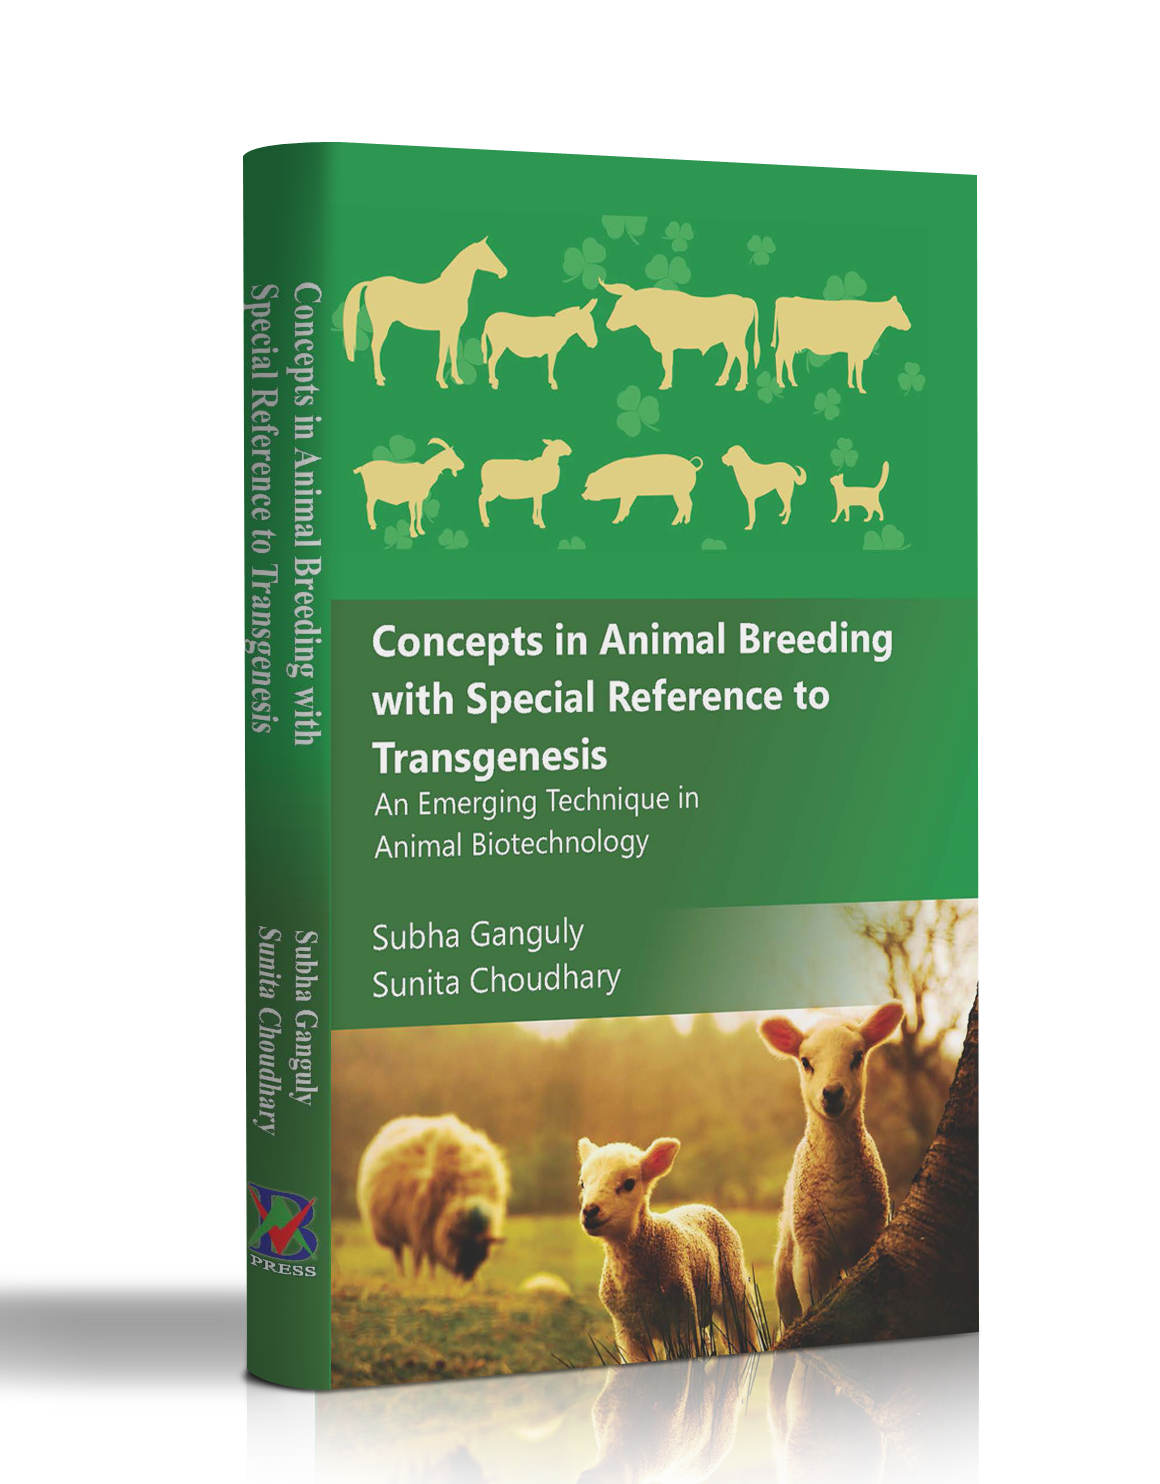 CONCEPTS IN ANIMAL BREEDING WITH SPECIAL REFERENCE TO TRANSGENESIS